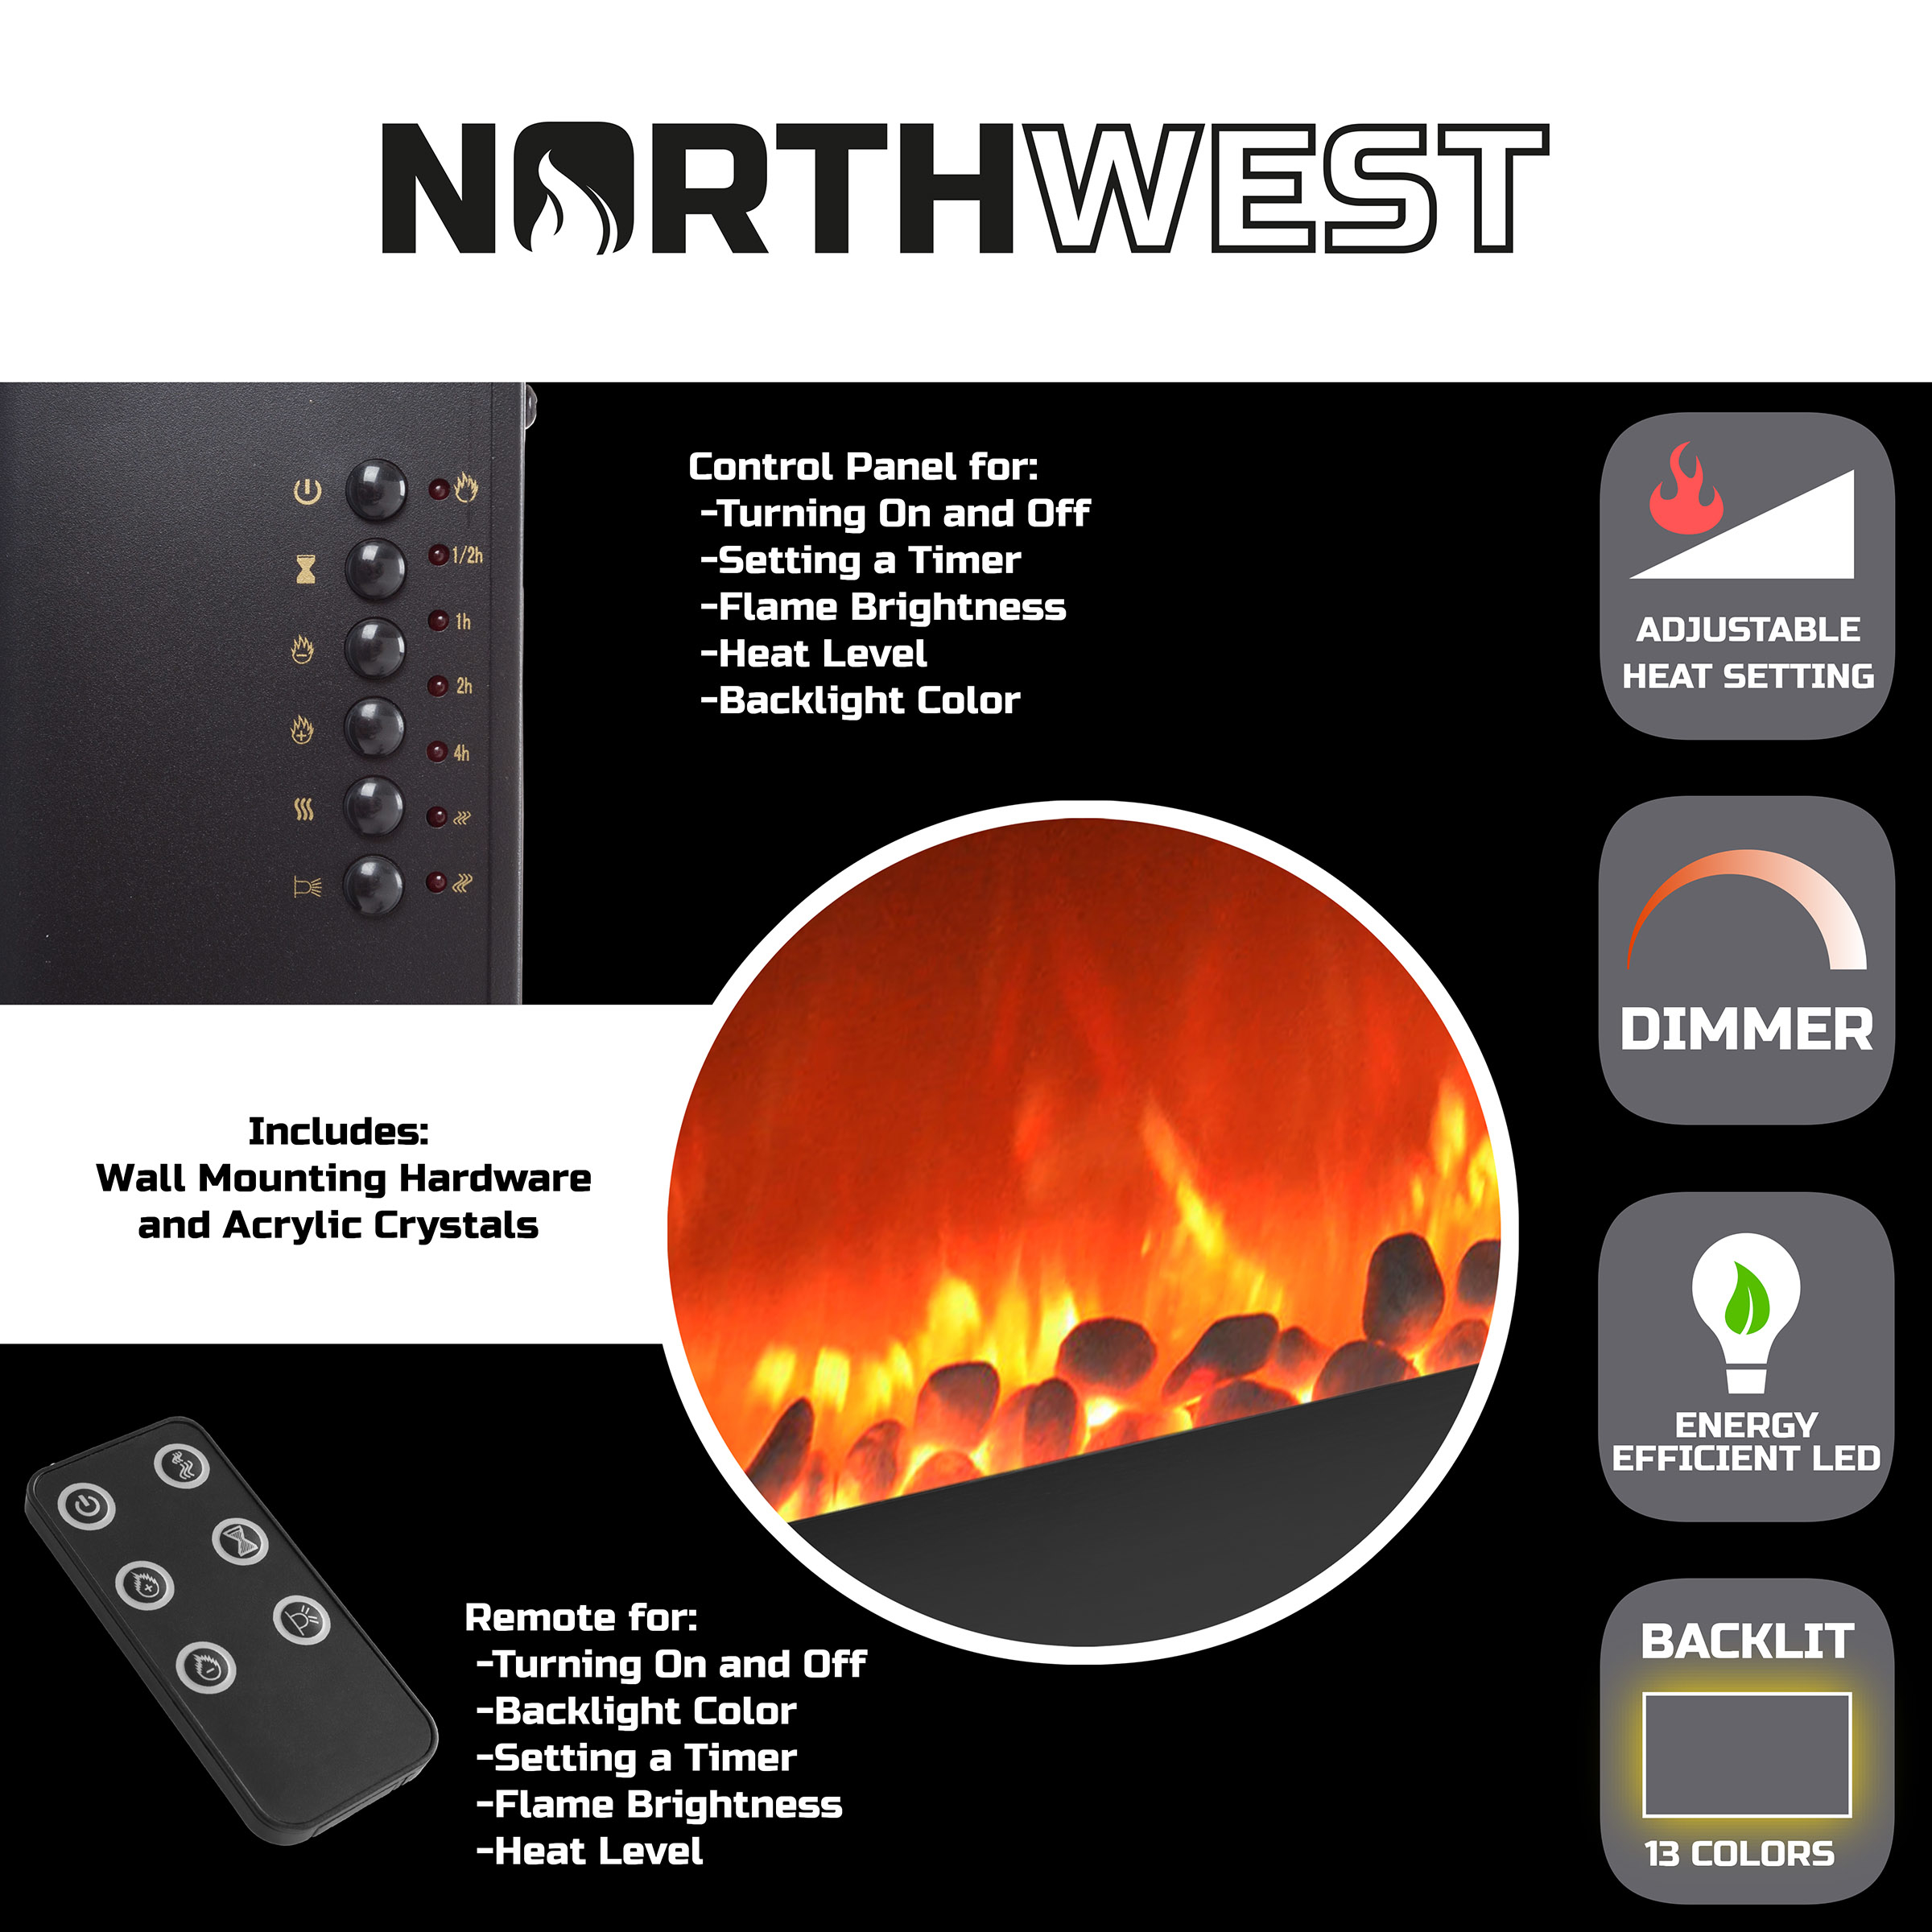 Electric Fireplace Wall Mounted Adjustable Heat Remote Backlight Colors Timer LED Flames 30.5 Inches (2)